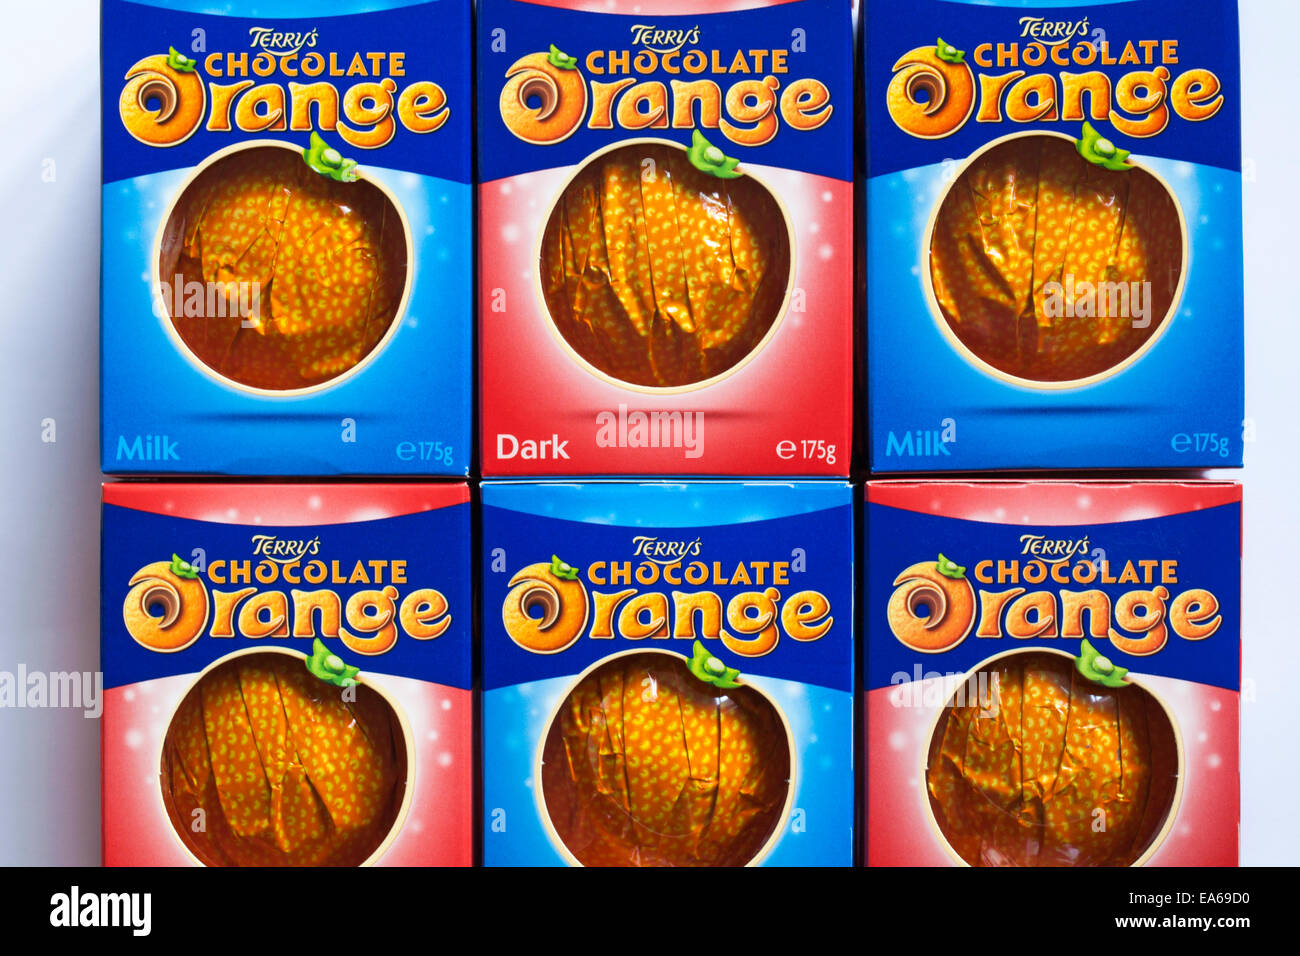 Boxes Of Terrys Chocolate Orange Dark And Terrys Chocolate